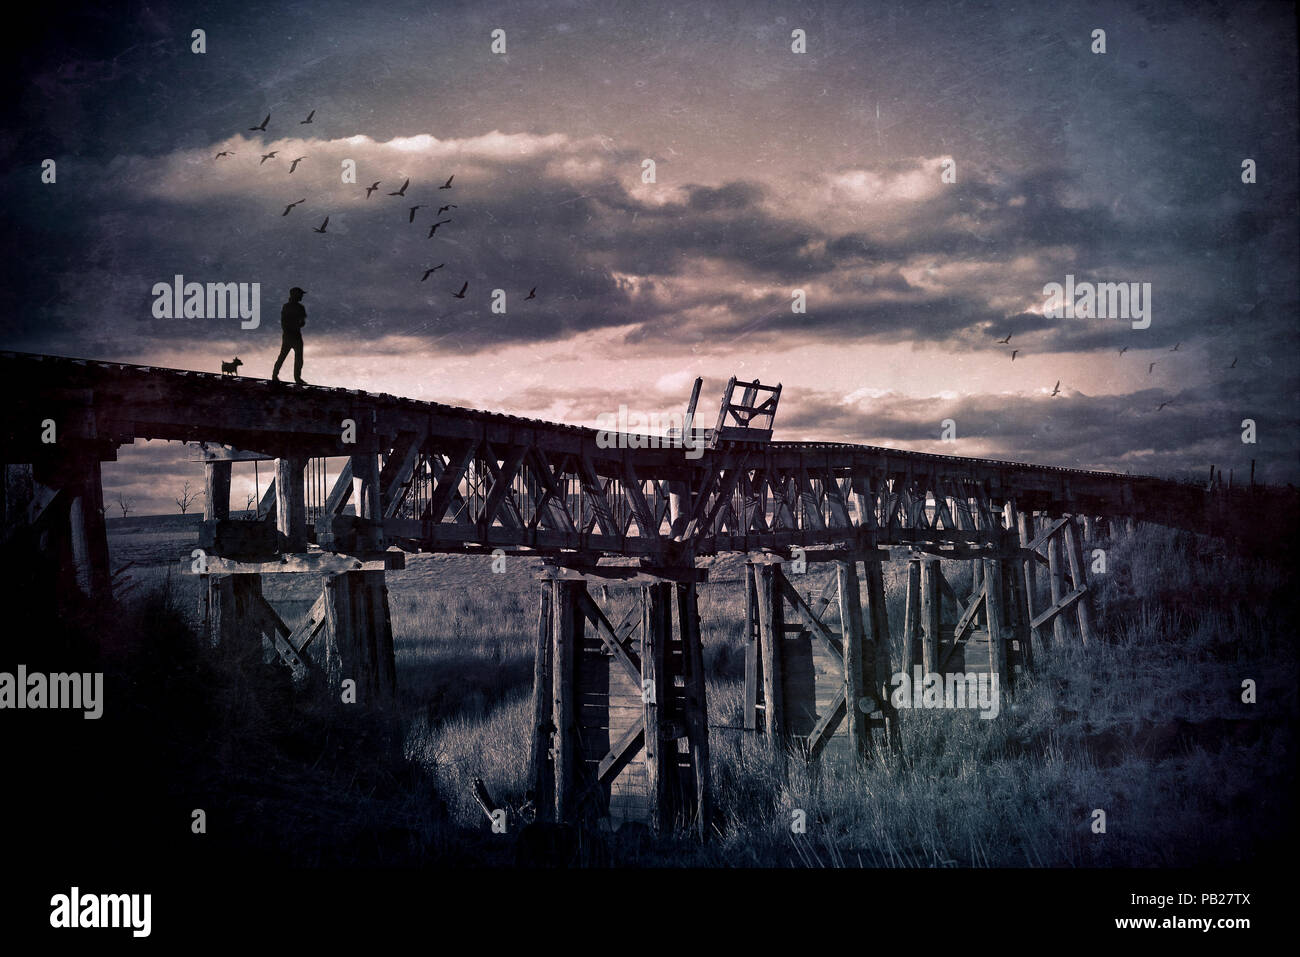 Lone man and his dog wander across an abandoned wooden railway bridge through the countryside. Grunge textured image. Wanderlust, travelling man, wand - Stock Image